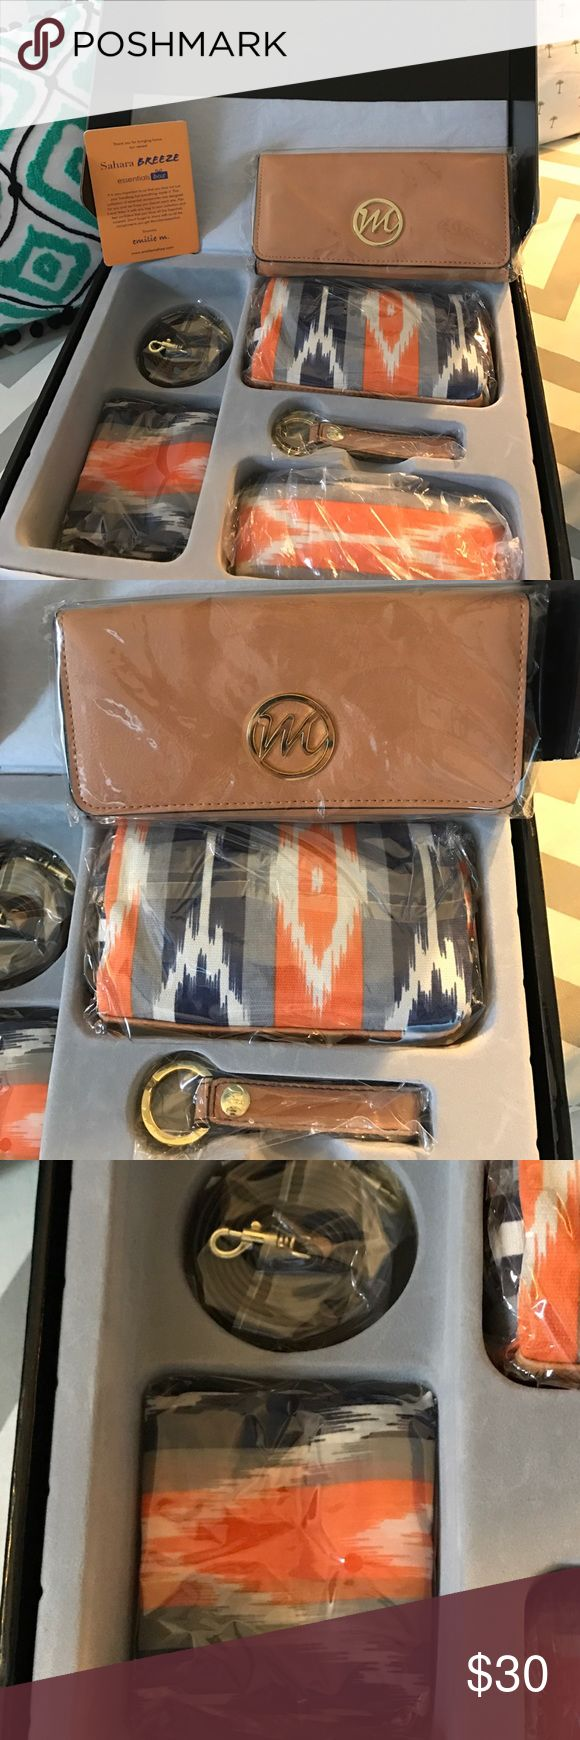 SAHARA BREEZE Gift Set!! AMAZING VALUE AWESOME BOX!!!!! Over $100 value !!!! Brand NEW!!! Never Used!!!  Cross body Wallet/Purse with Strap , Cosmetic Case , Scarf, Key Fob , Sunglass Case ...🌸🌴 SAHARA BREEZE Bags Clutches & Wristlets